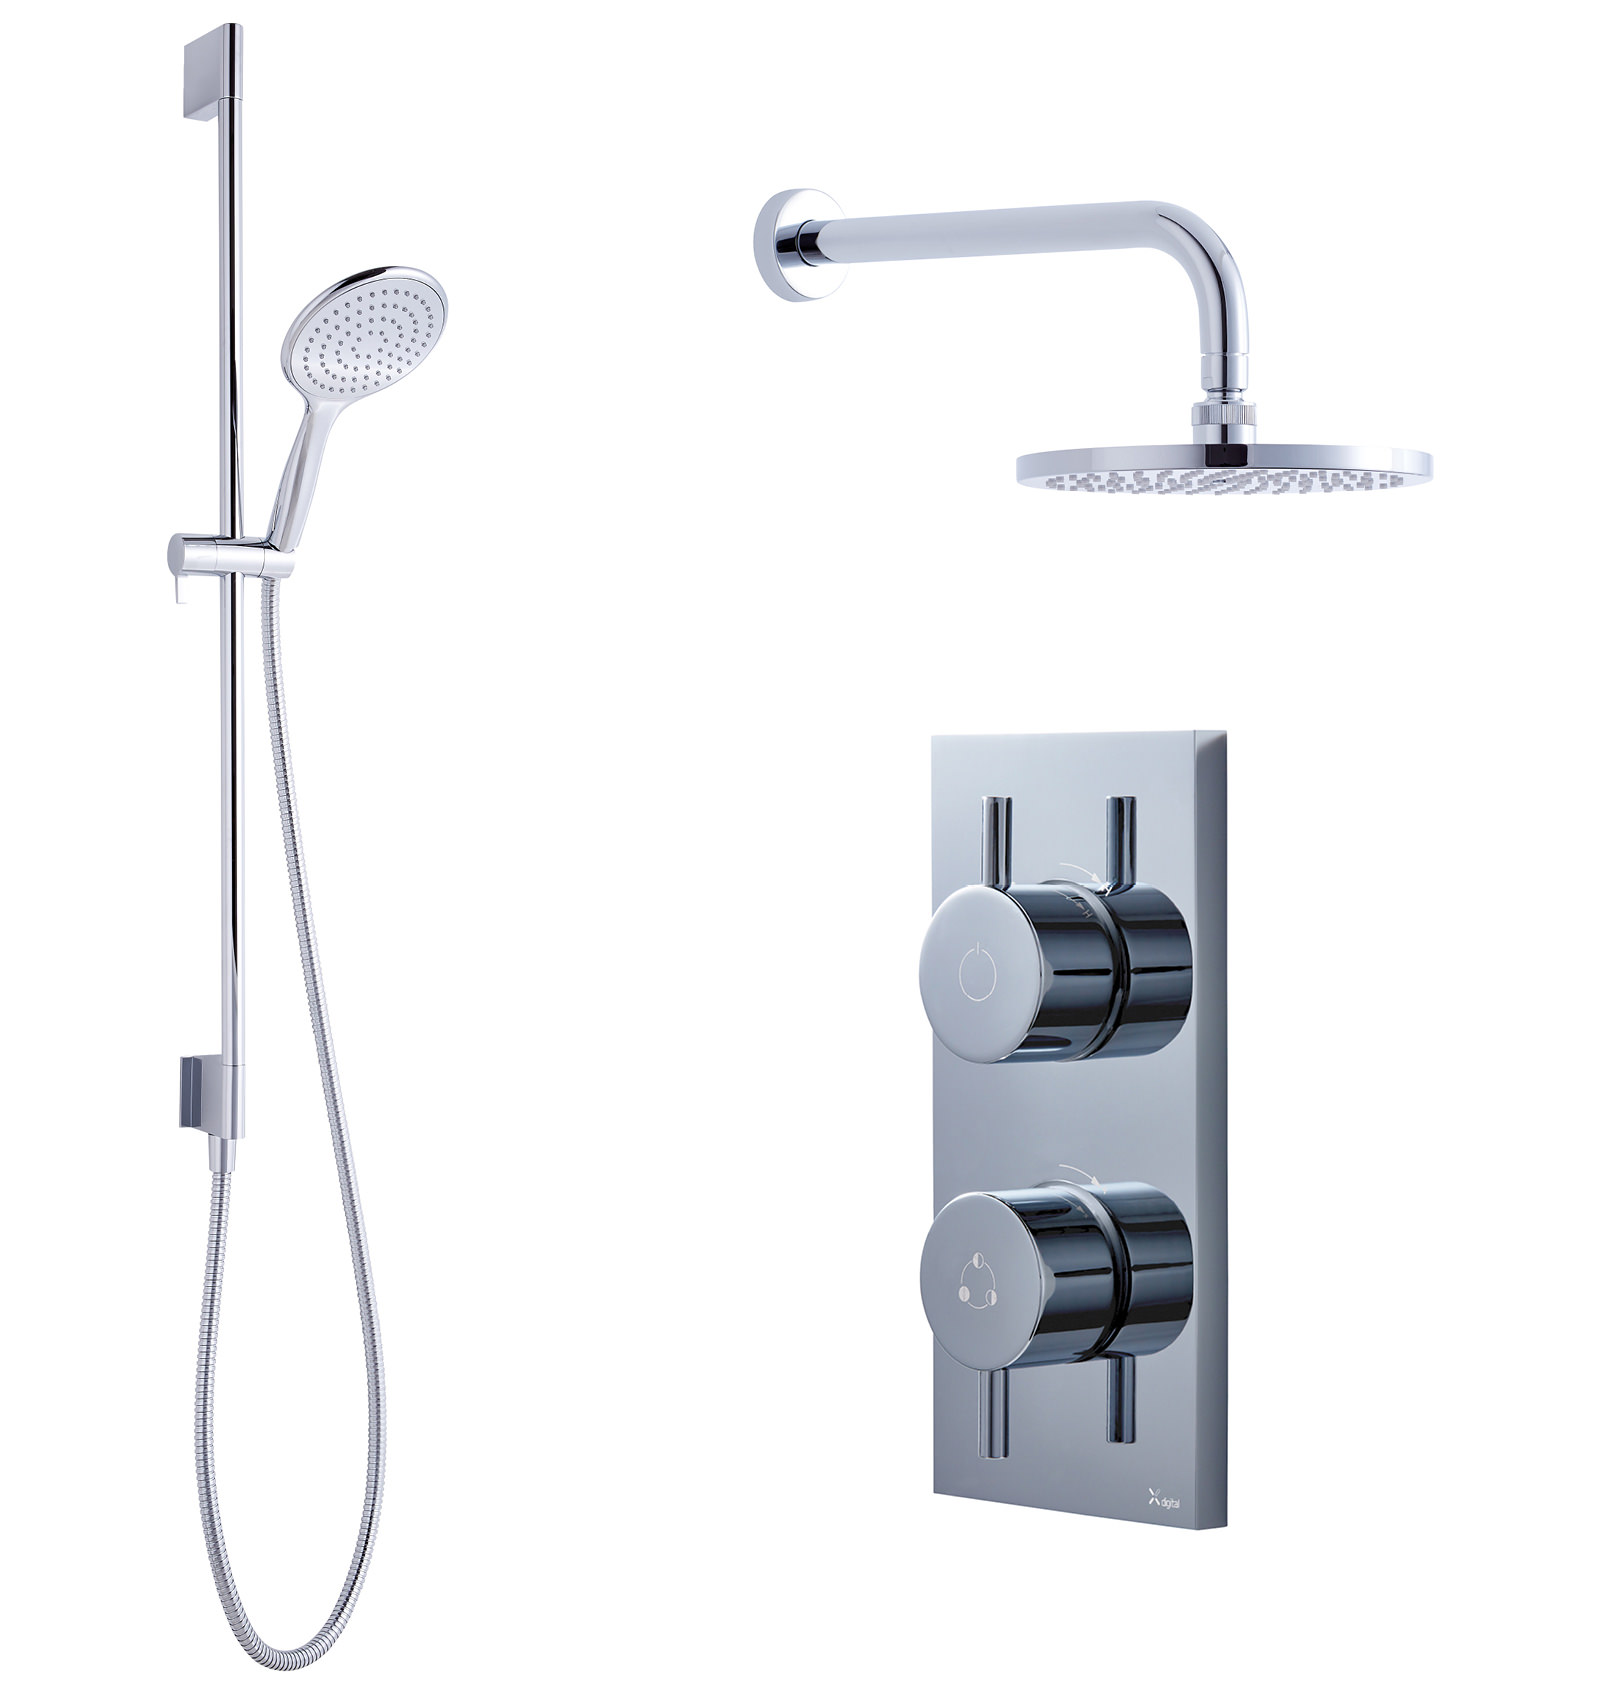 styling round bathroom new pin dorfstyle with inspiration led ledshower rail design overhead dorf shower luminous head